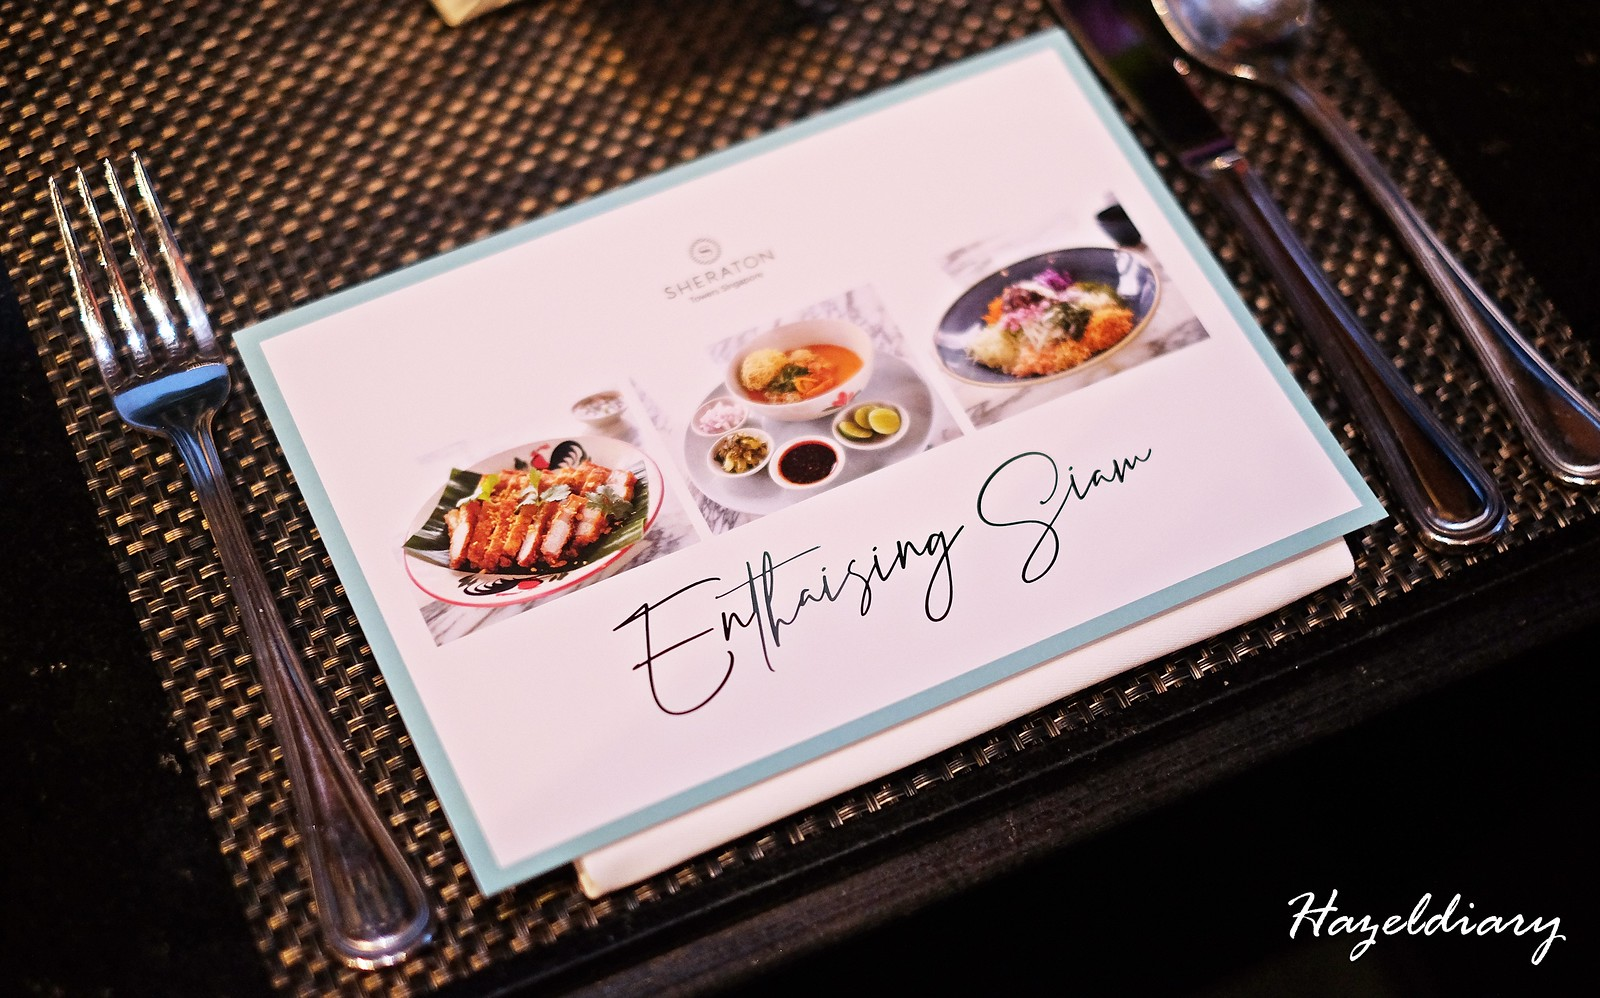 EnThaising Siam-The Dining Room Sheraton Towers Singapore